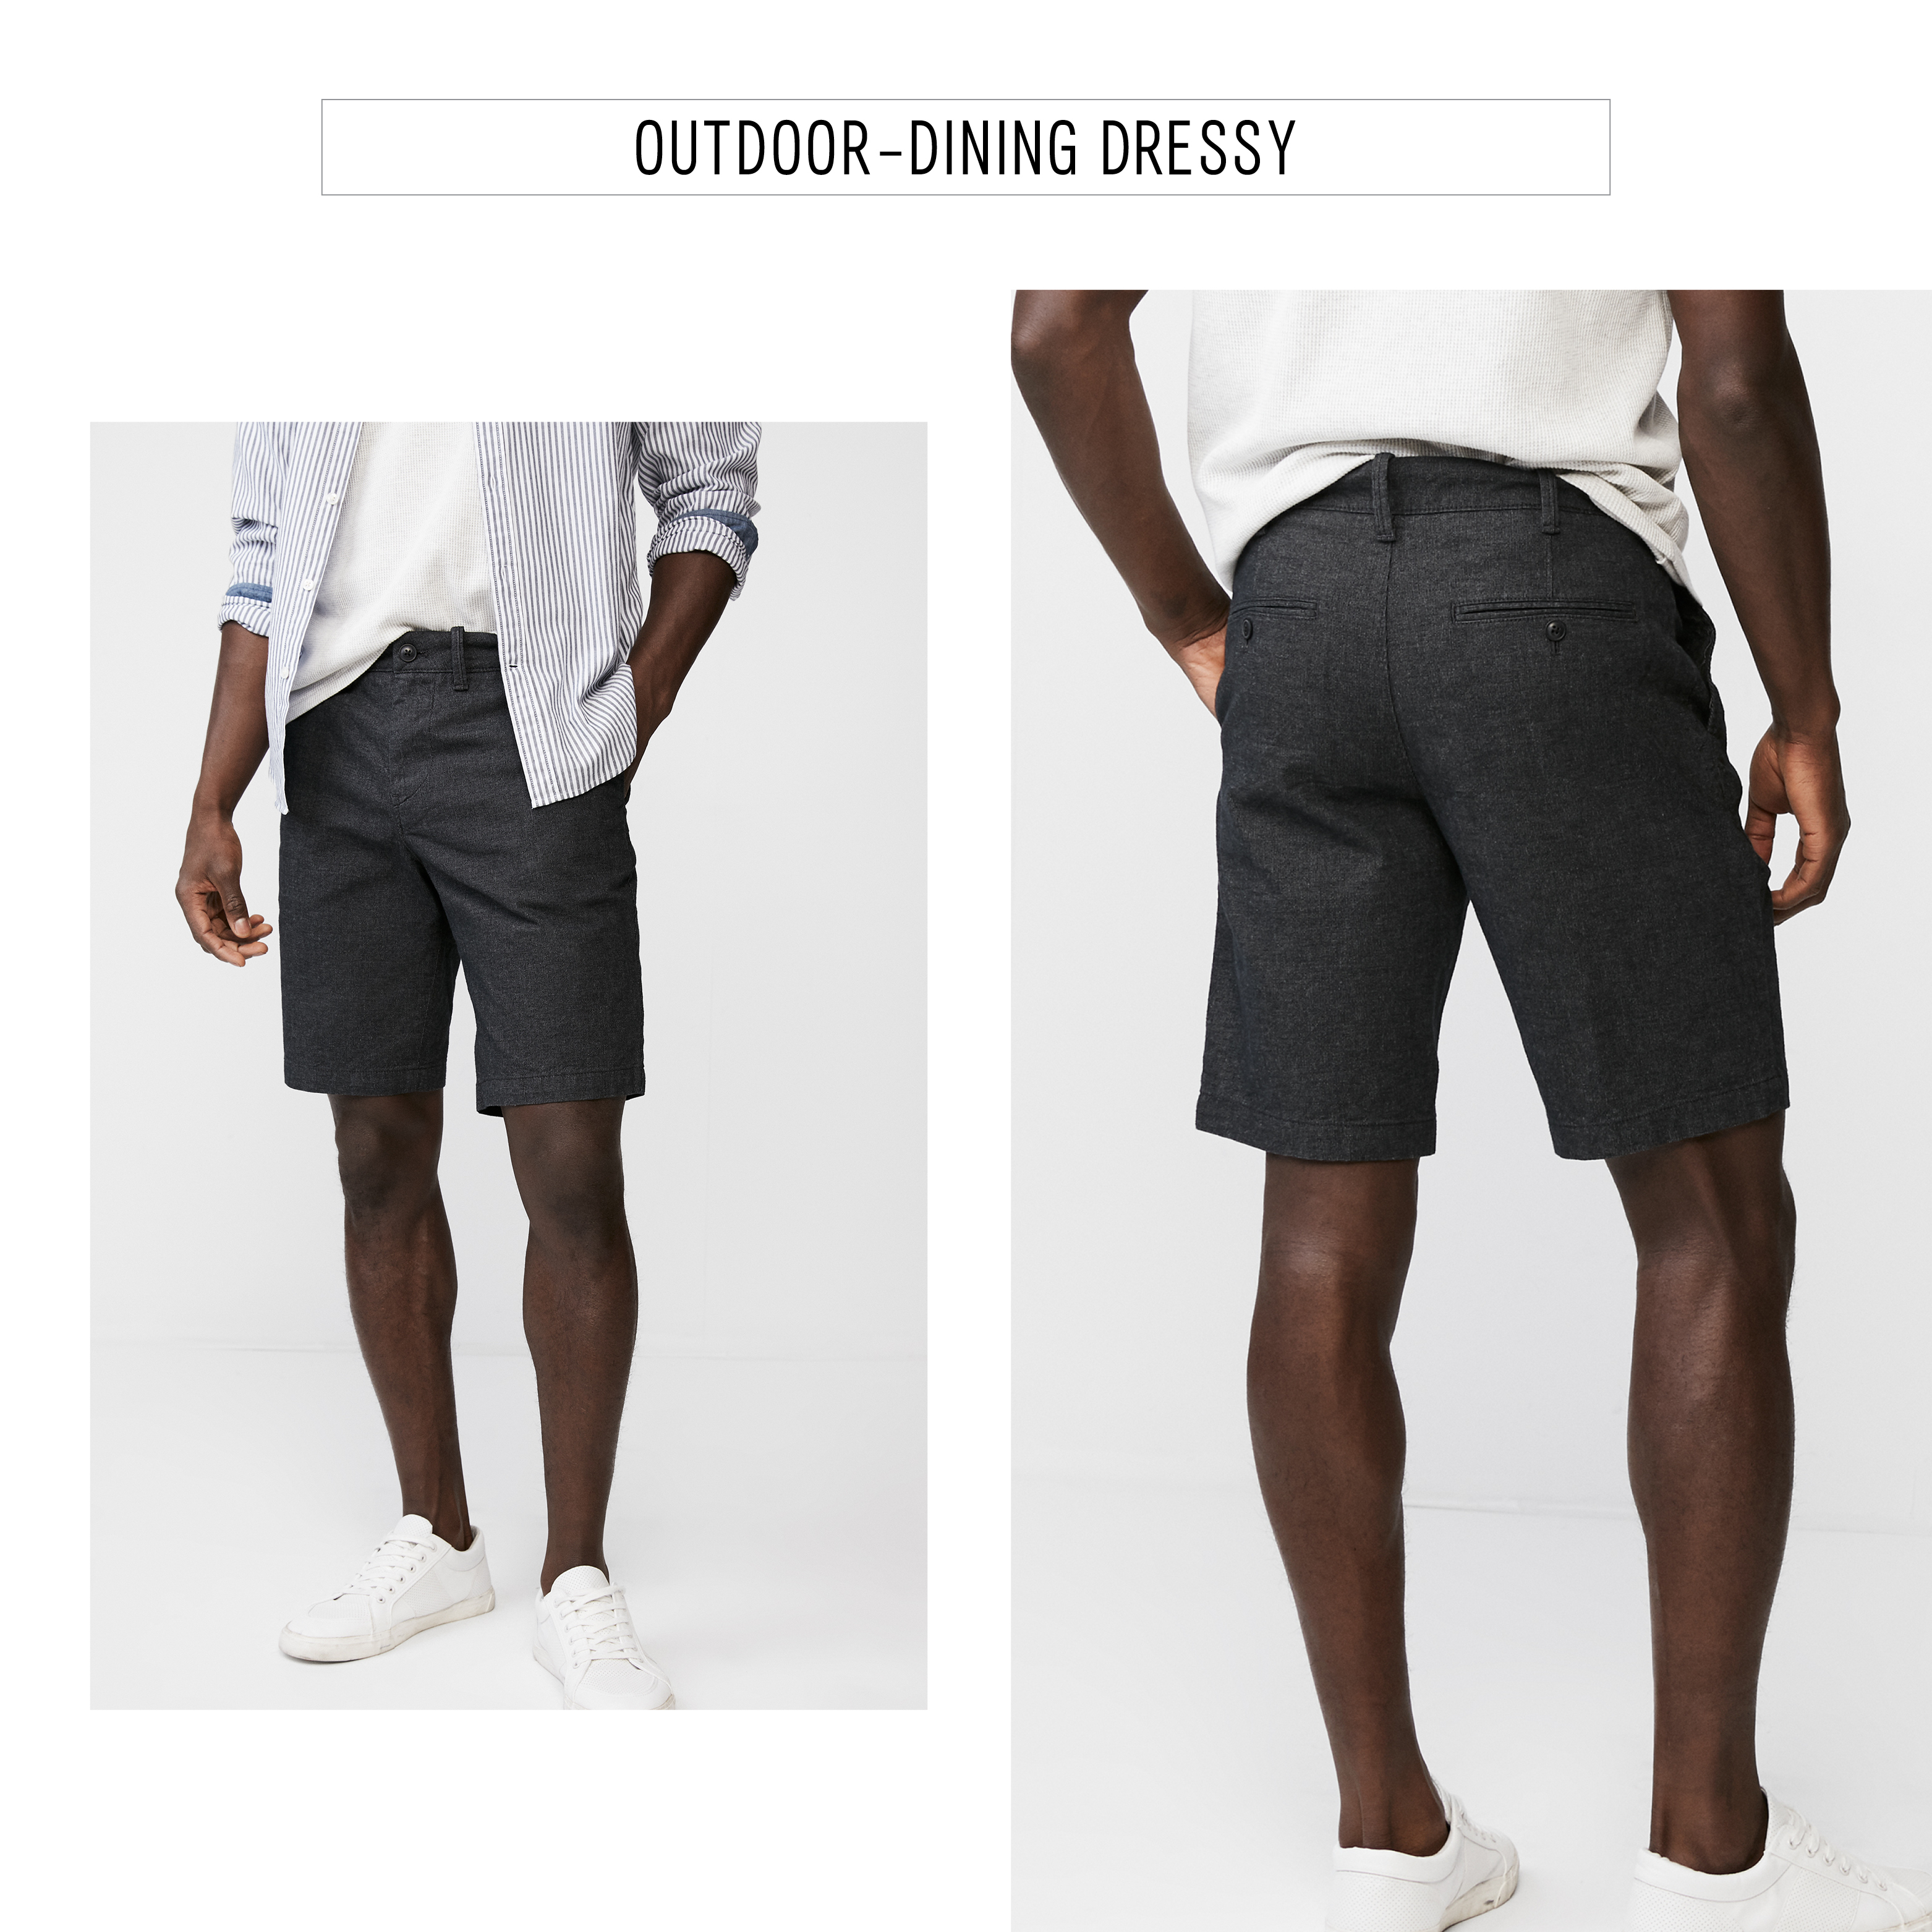 mens-shorts-outdoor-dining-dressy